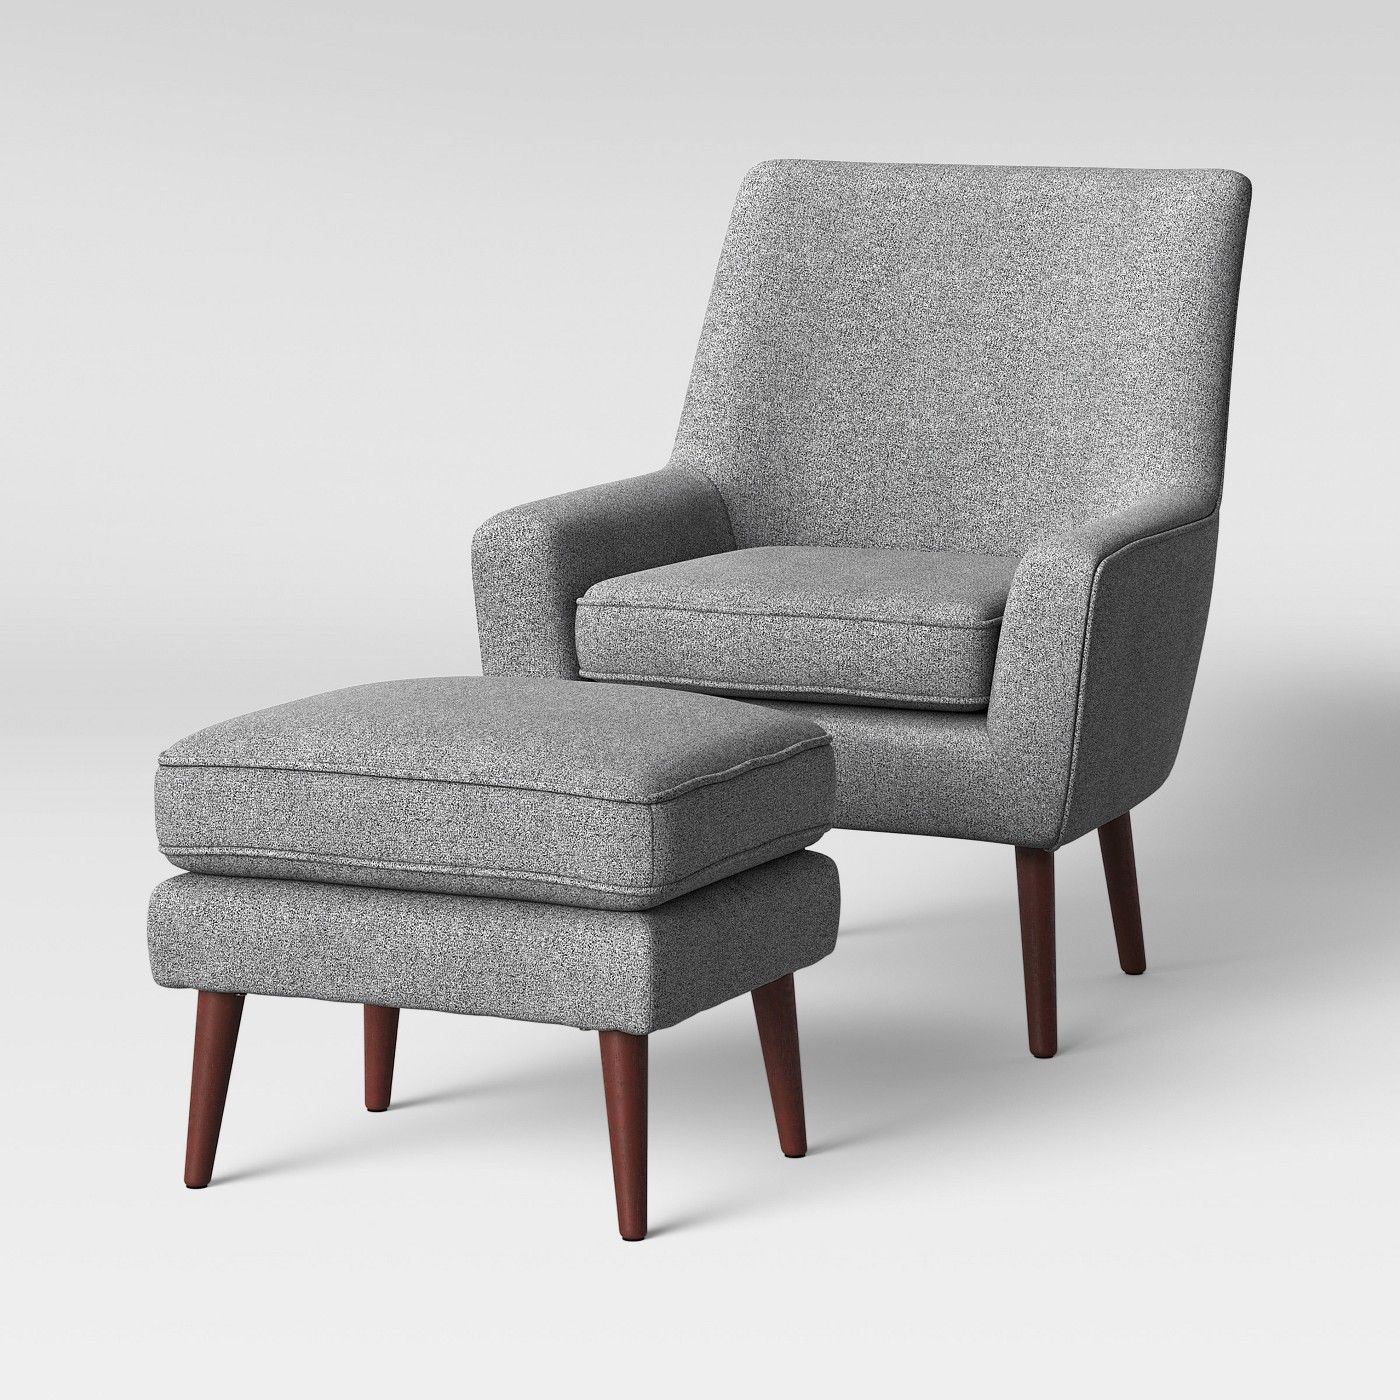 Stupendous 2Pc Durell Chair And Ottoman Gray Project 62 Sofa In Spiritservingveterans Wood Chair Design Ideas Spiritservingveteransorg